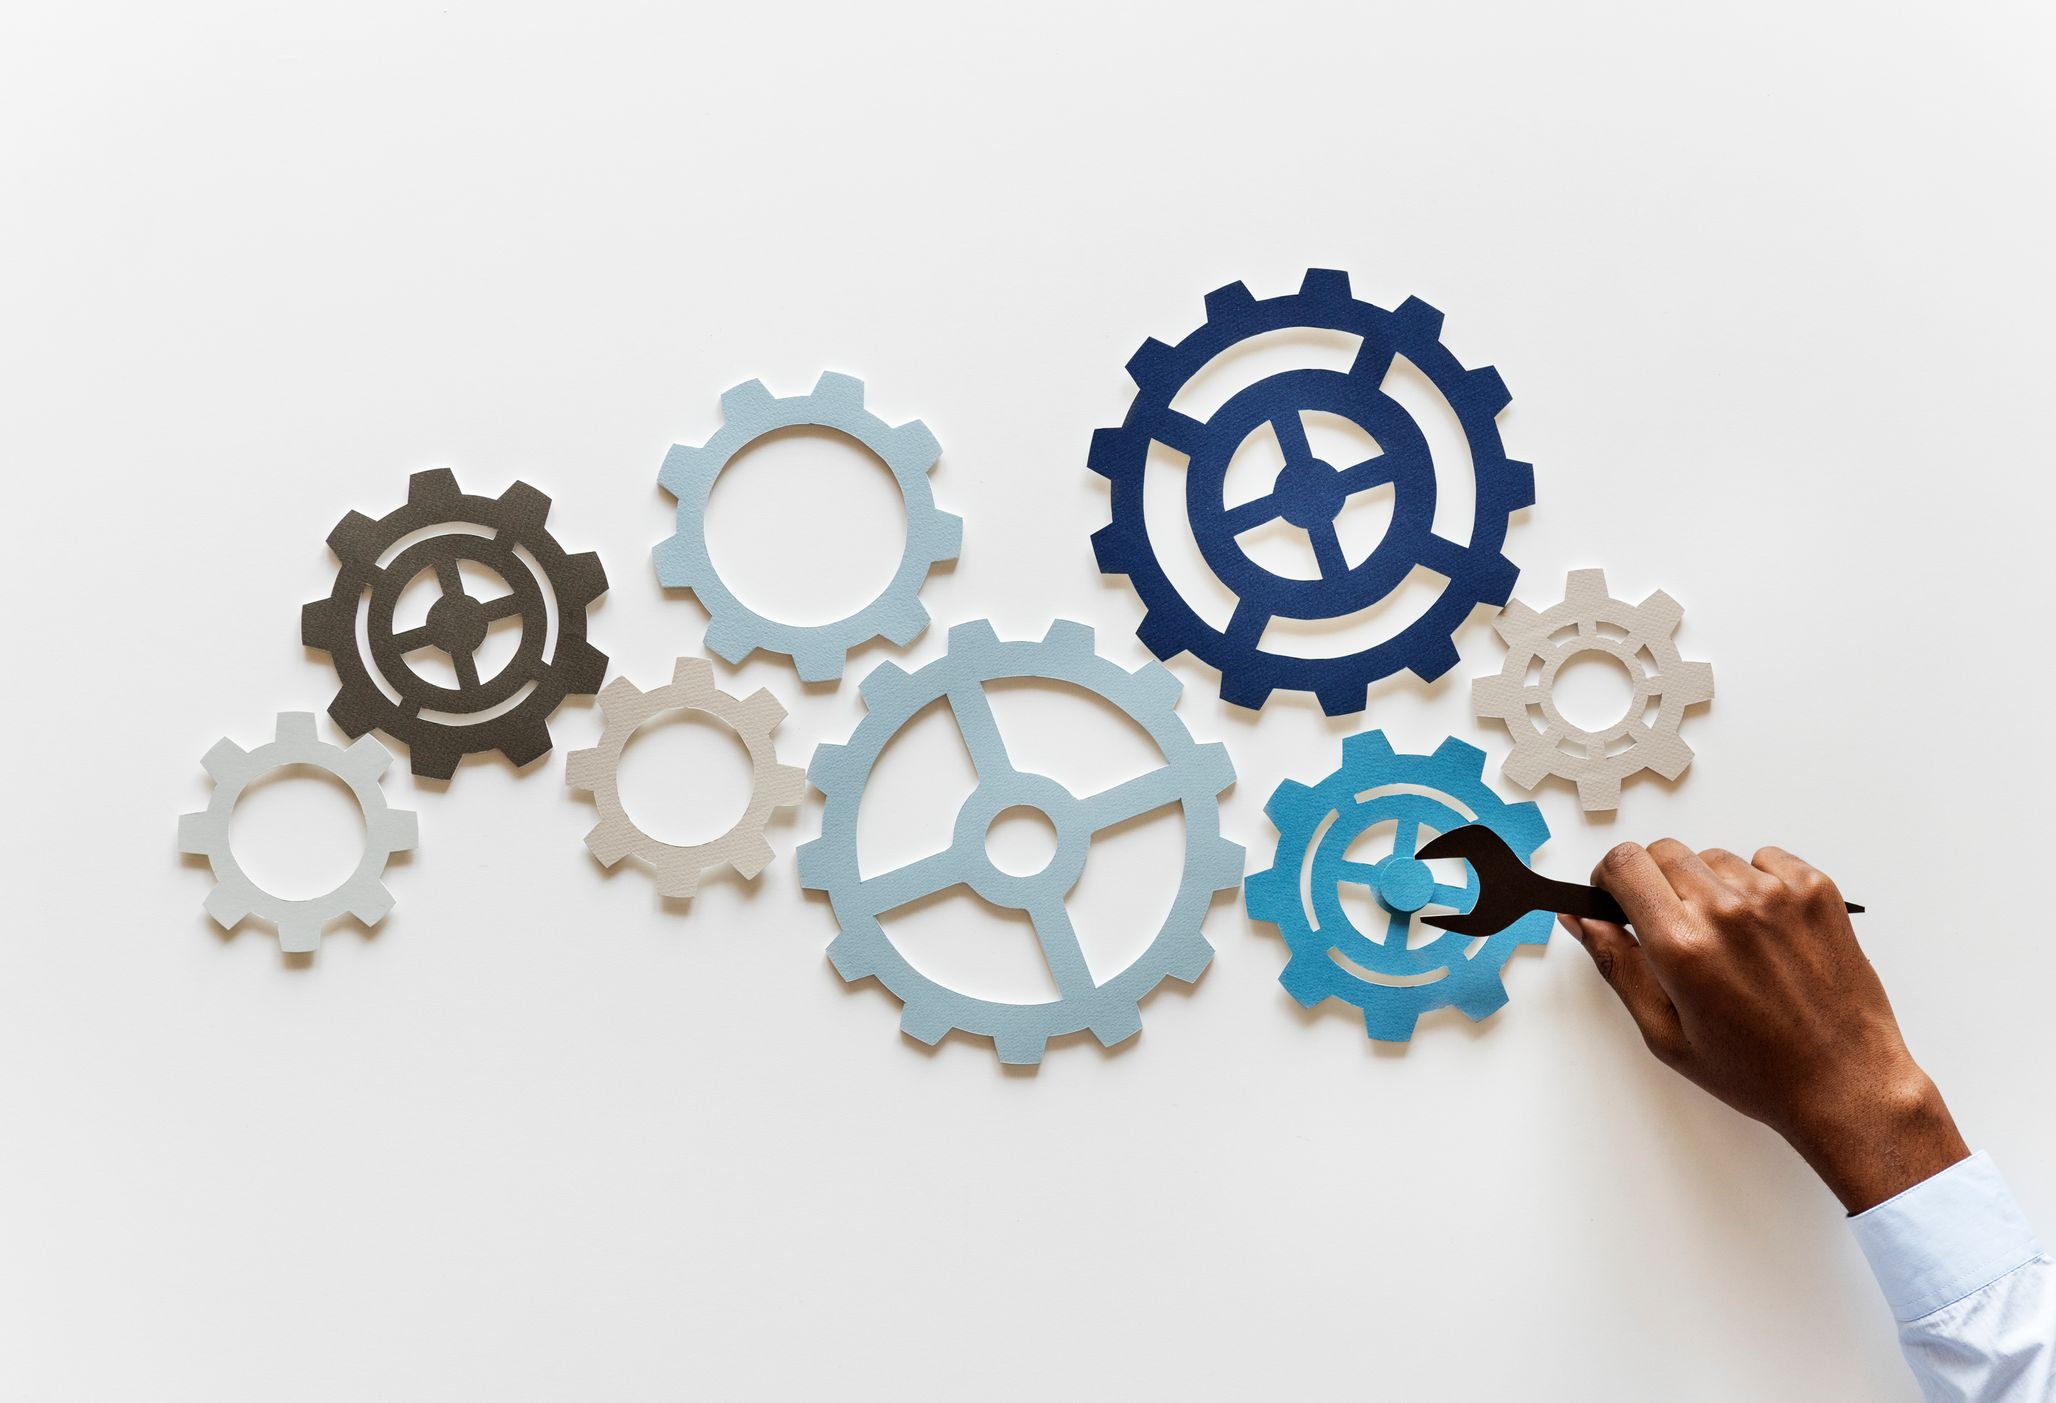 Photo of gears and a hand with a wrench turning them